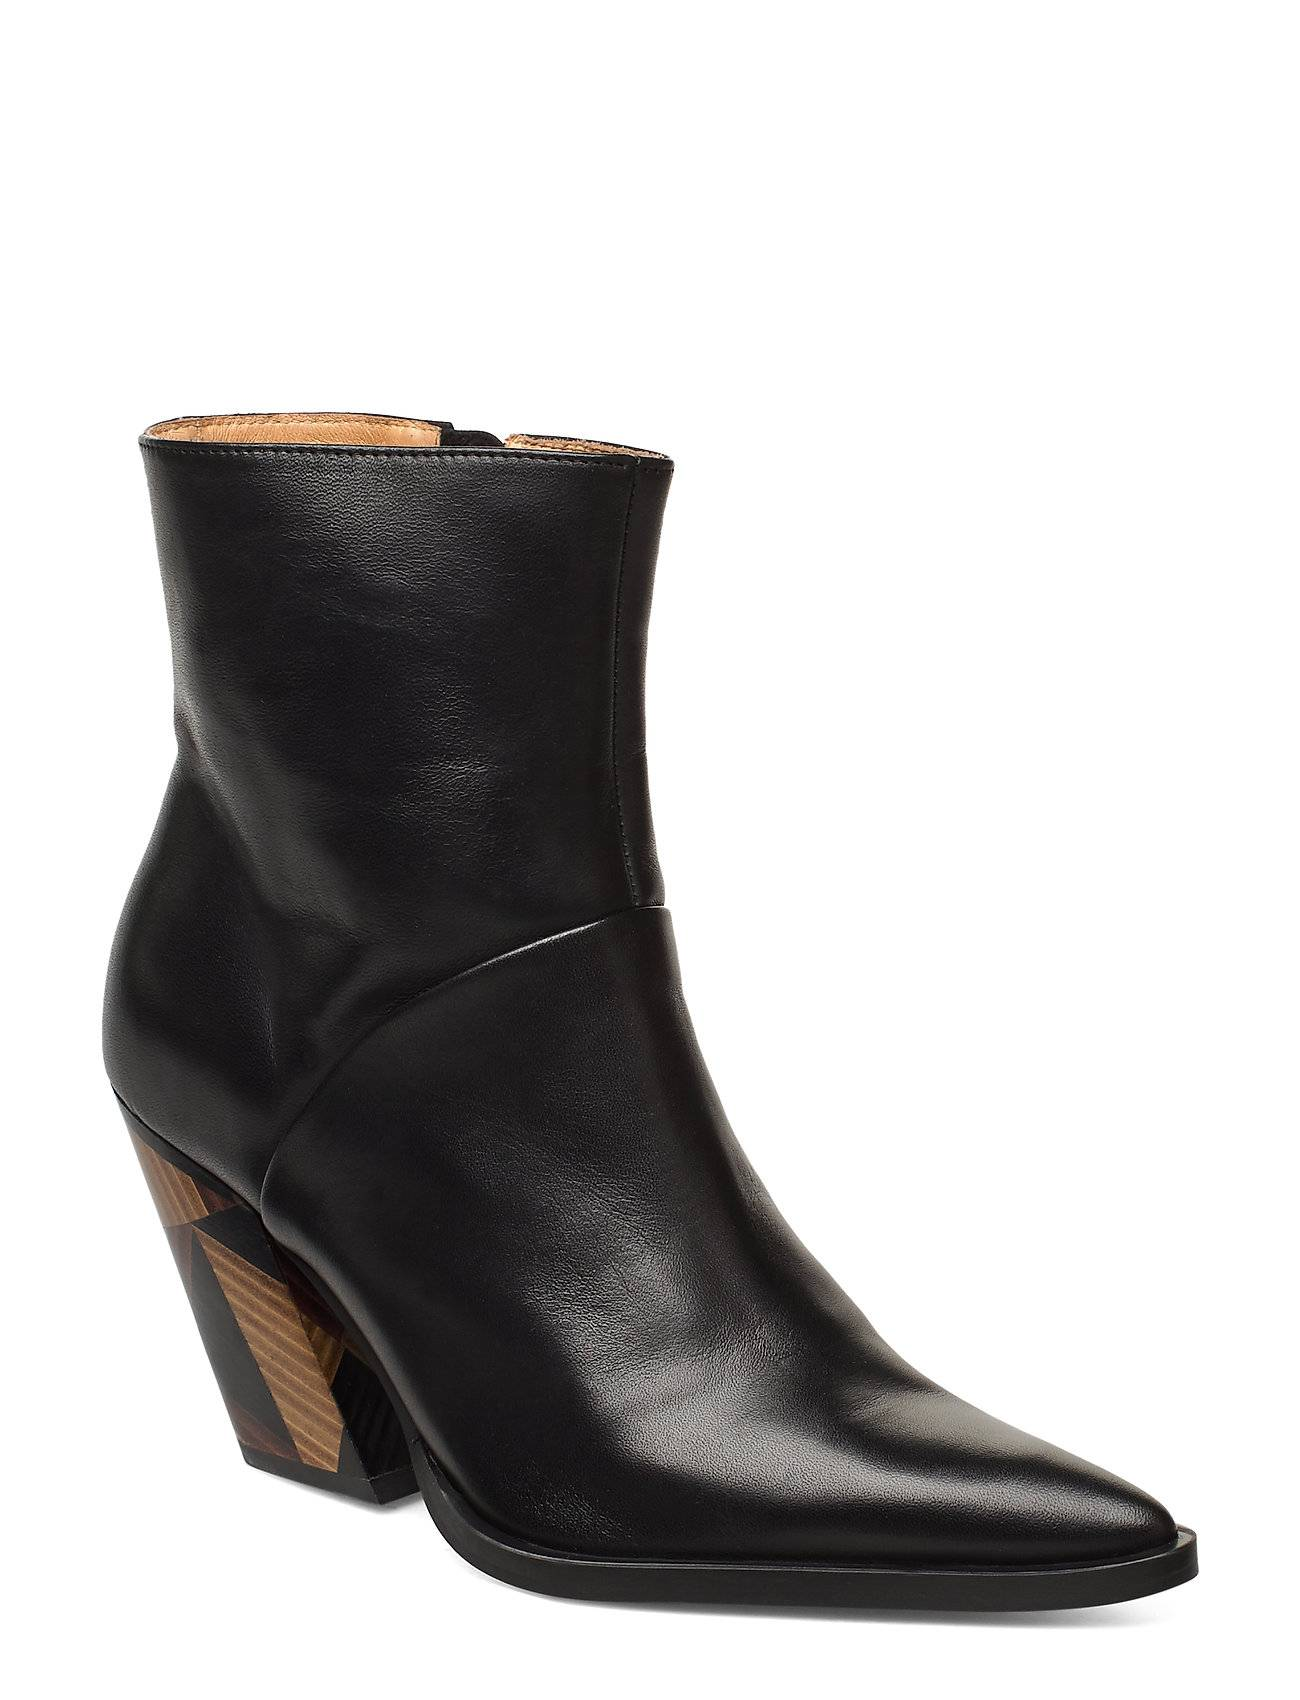 ANNY NORD Escape From Reality Shoes Boots Ankle Boots Ankle Boots With Heel Musta